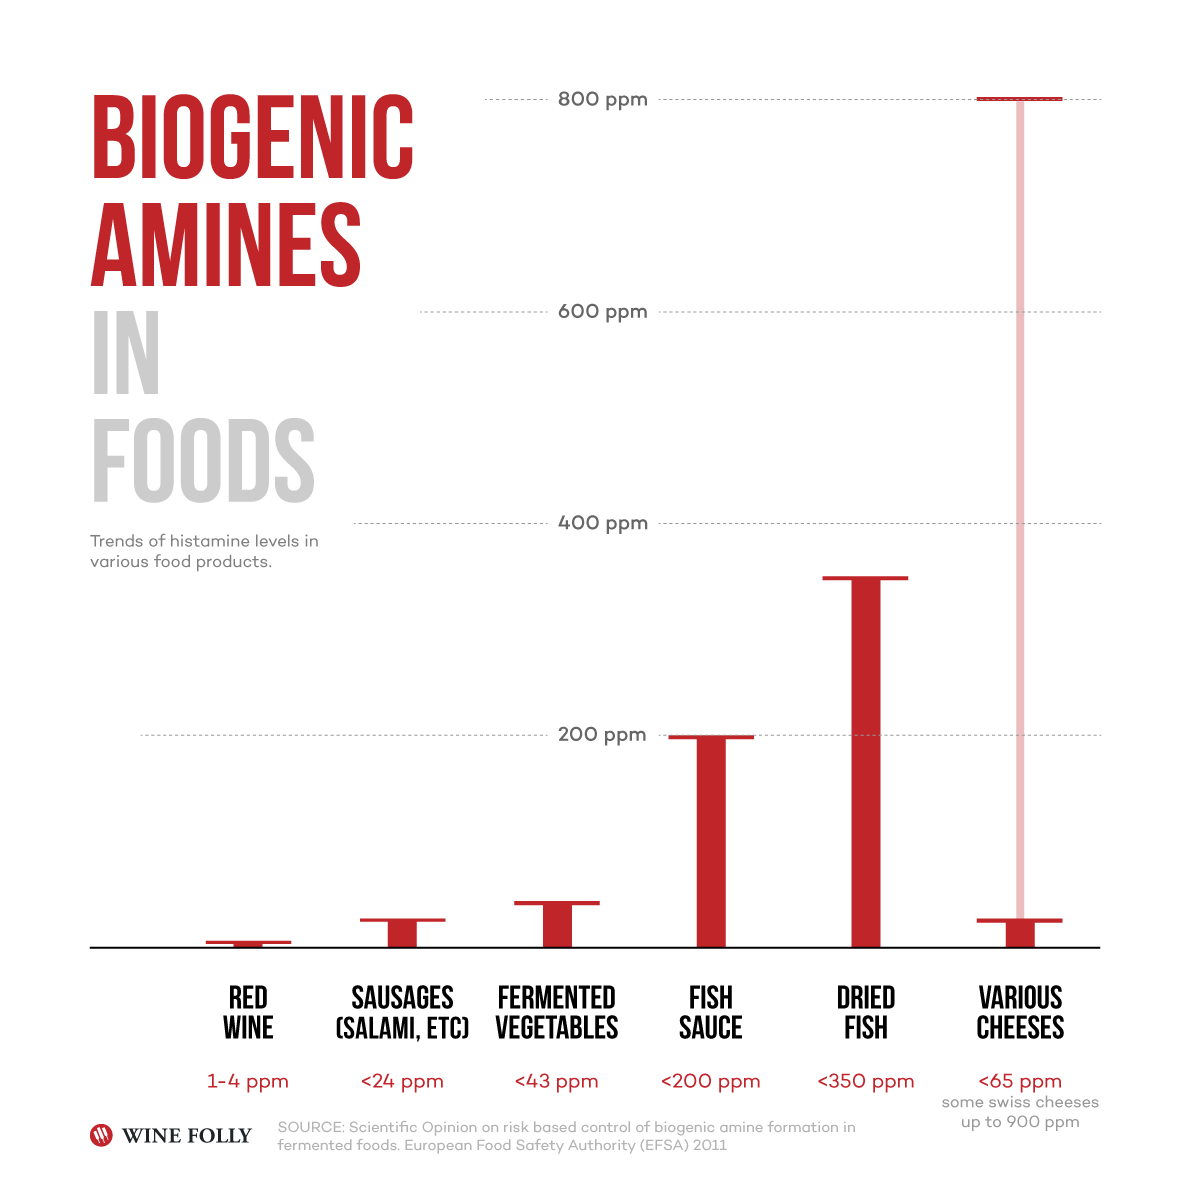 biogenic-amines-in-foods-winefolly-infographic